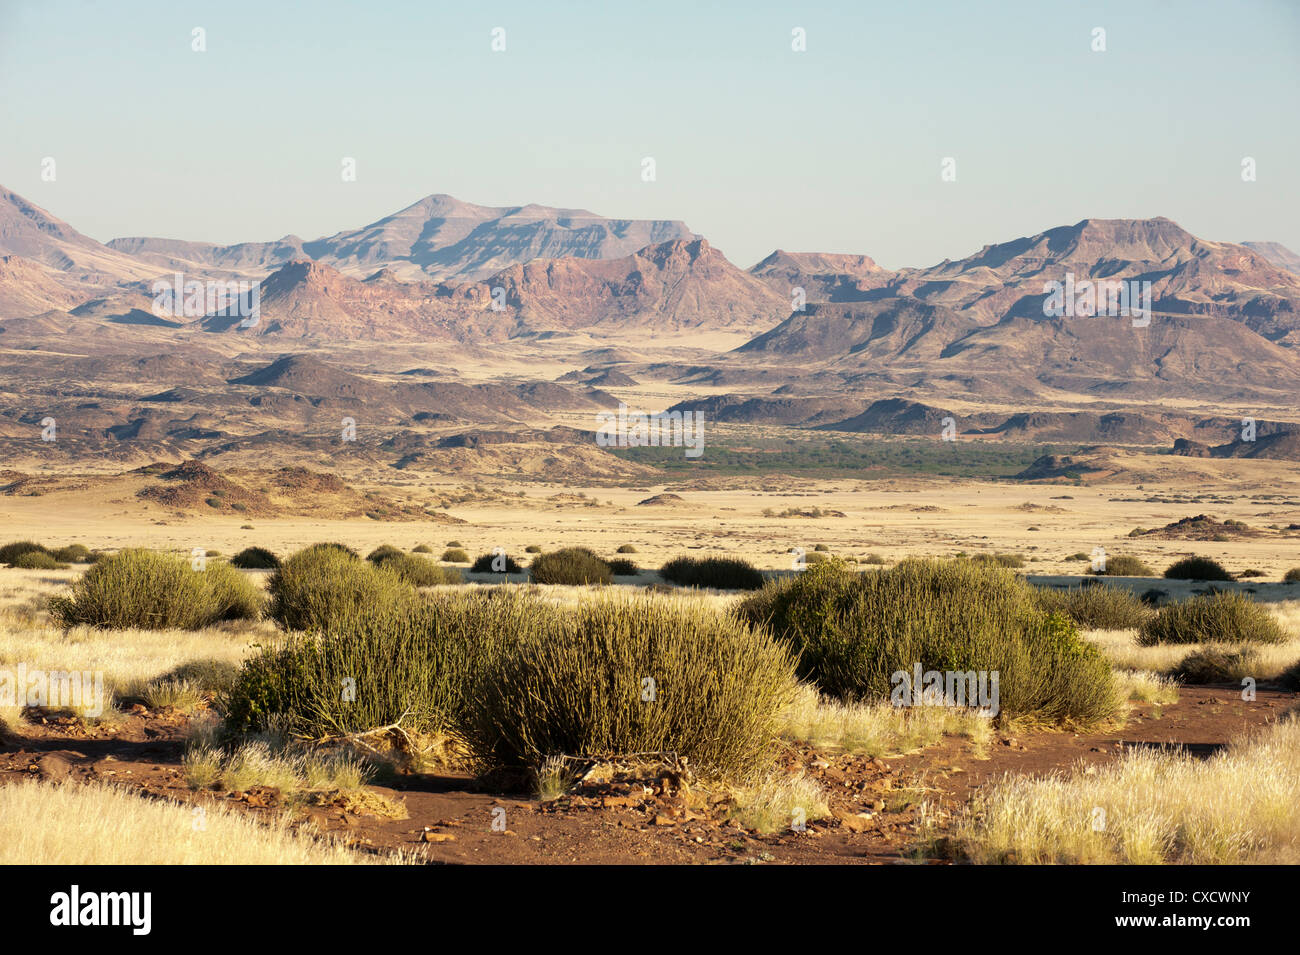 Huab River Valley, Torra Conservancy, Damaraland, Namibia, Africa - Stock Image